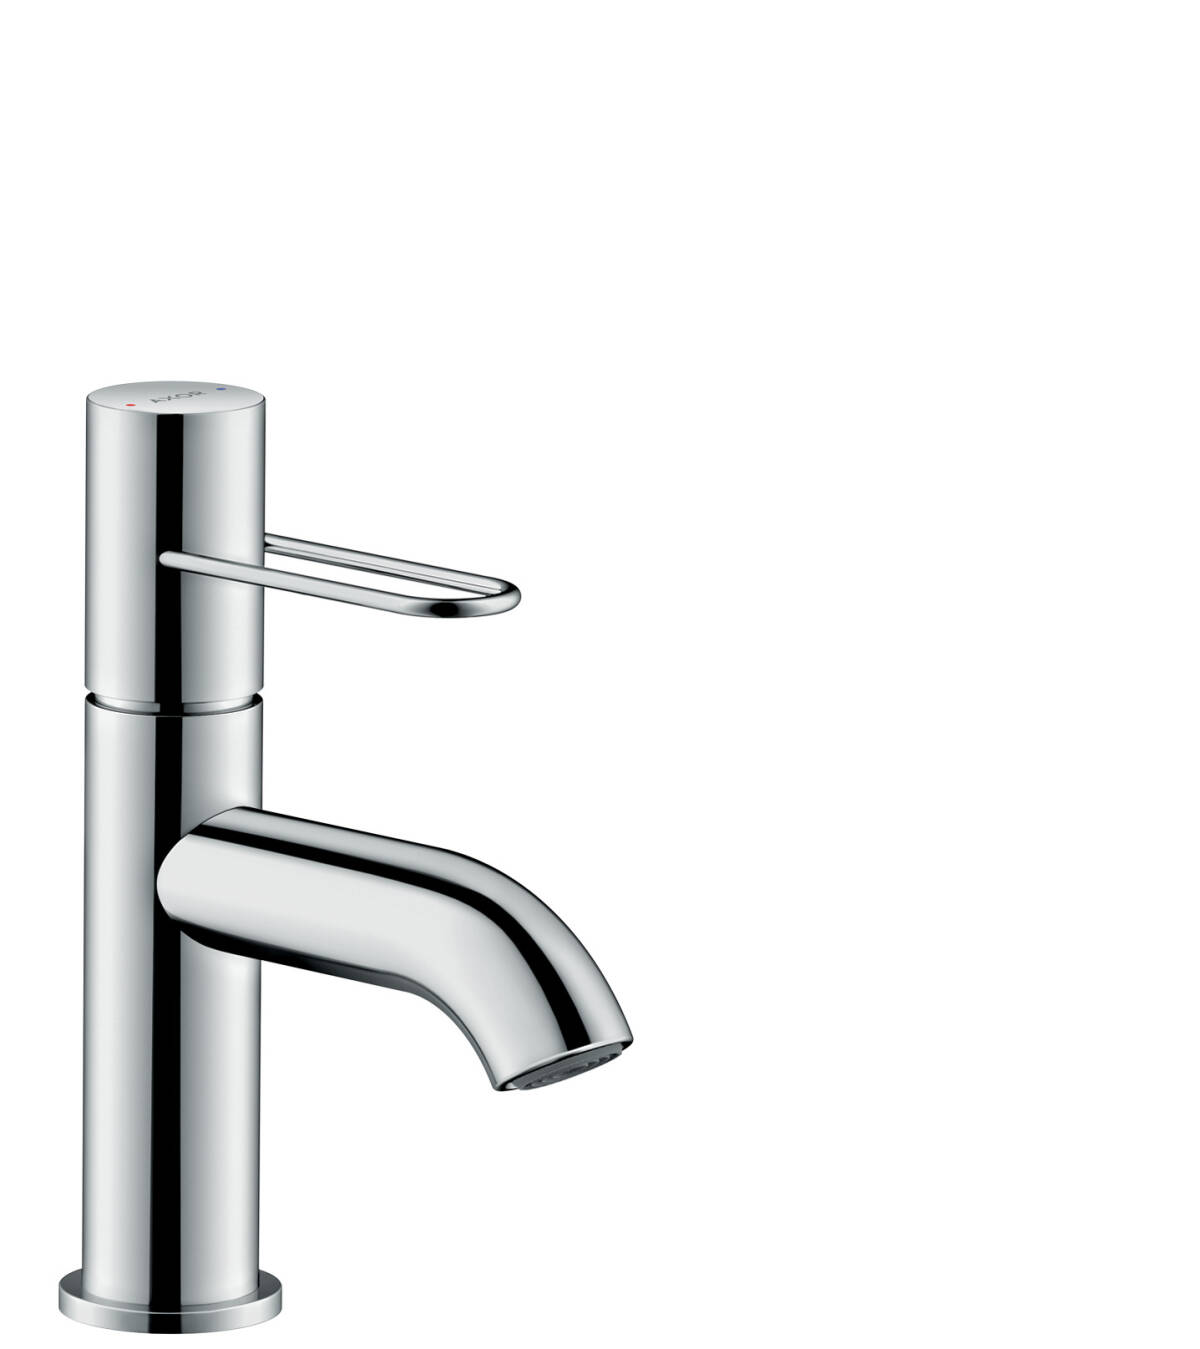 Single lever basin mixer 70 with loop handle and waste set, Chrome, 38021000